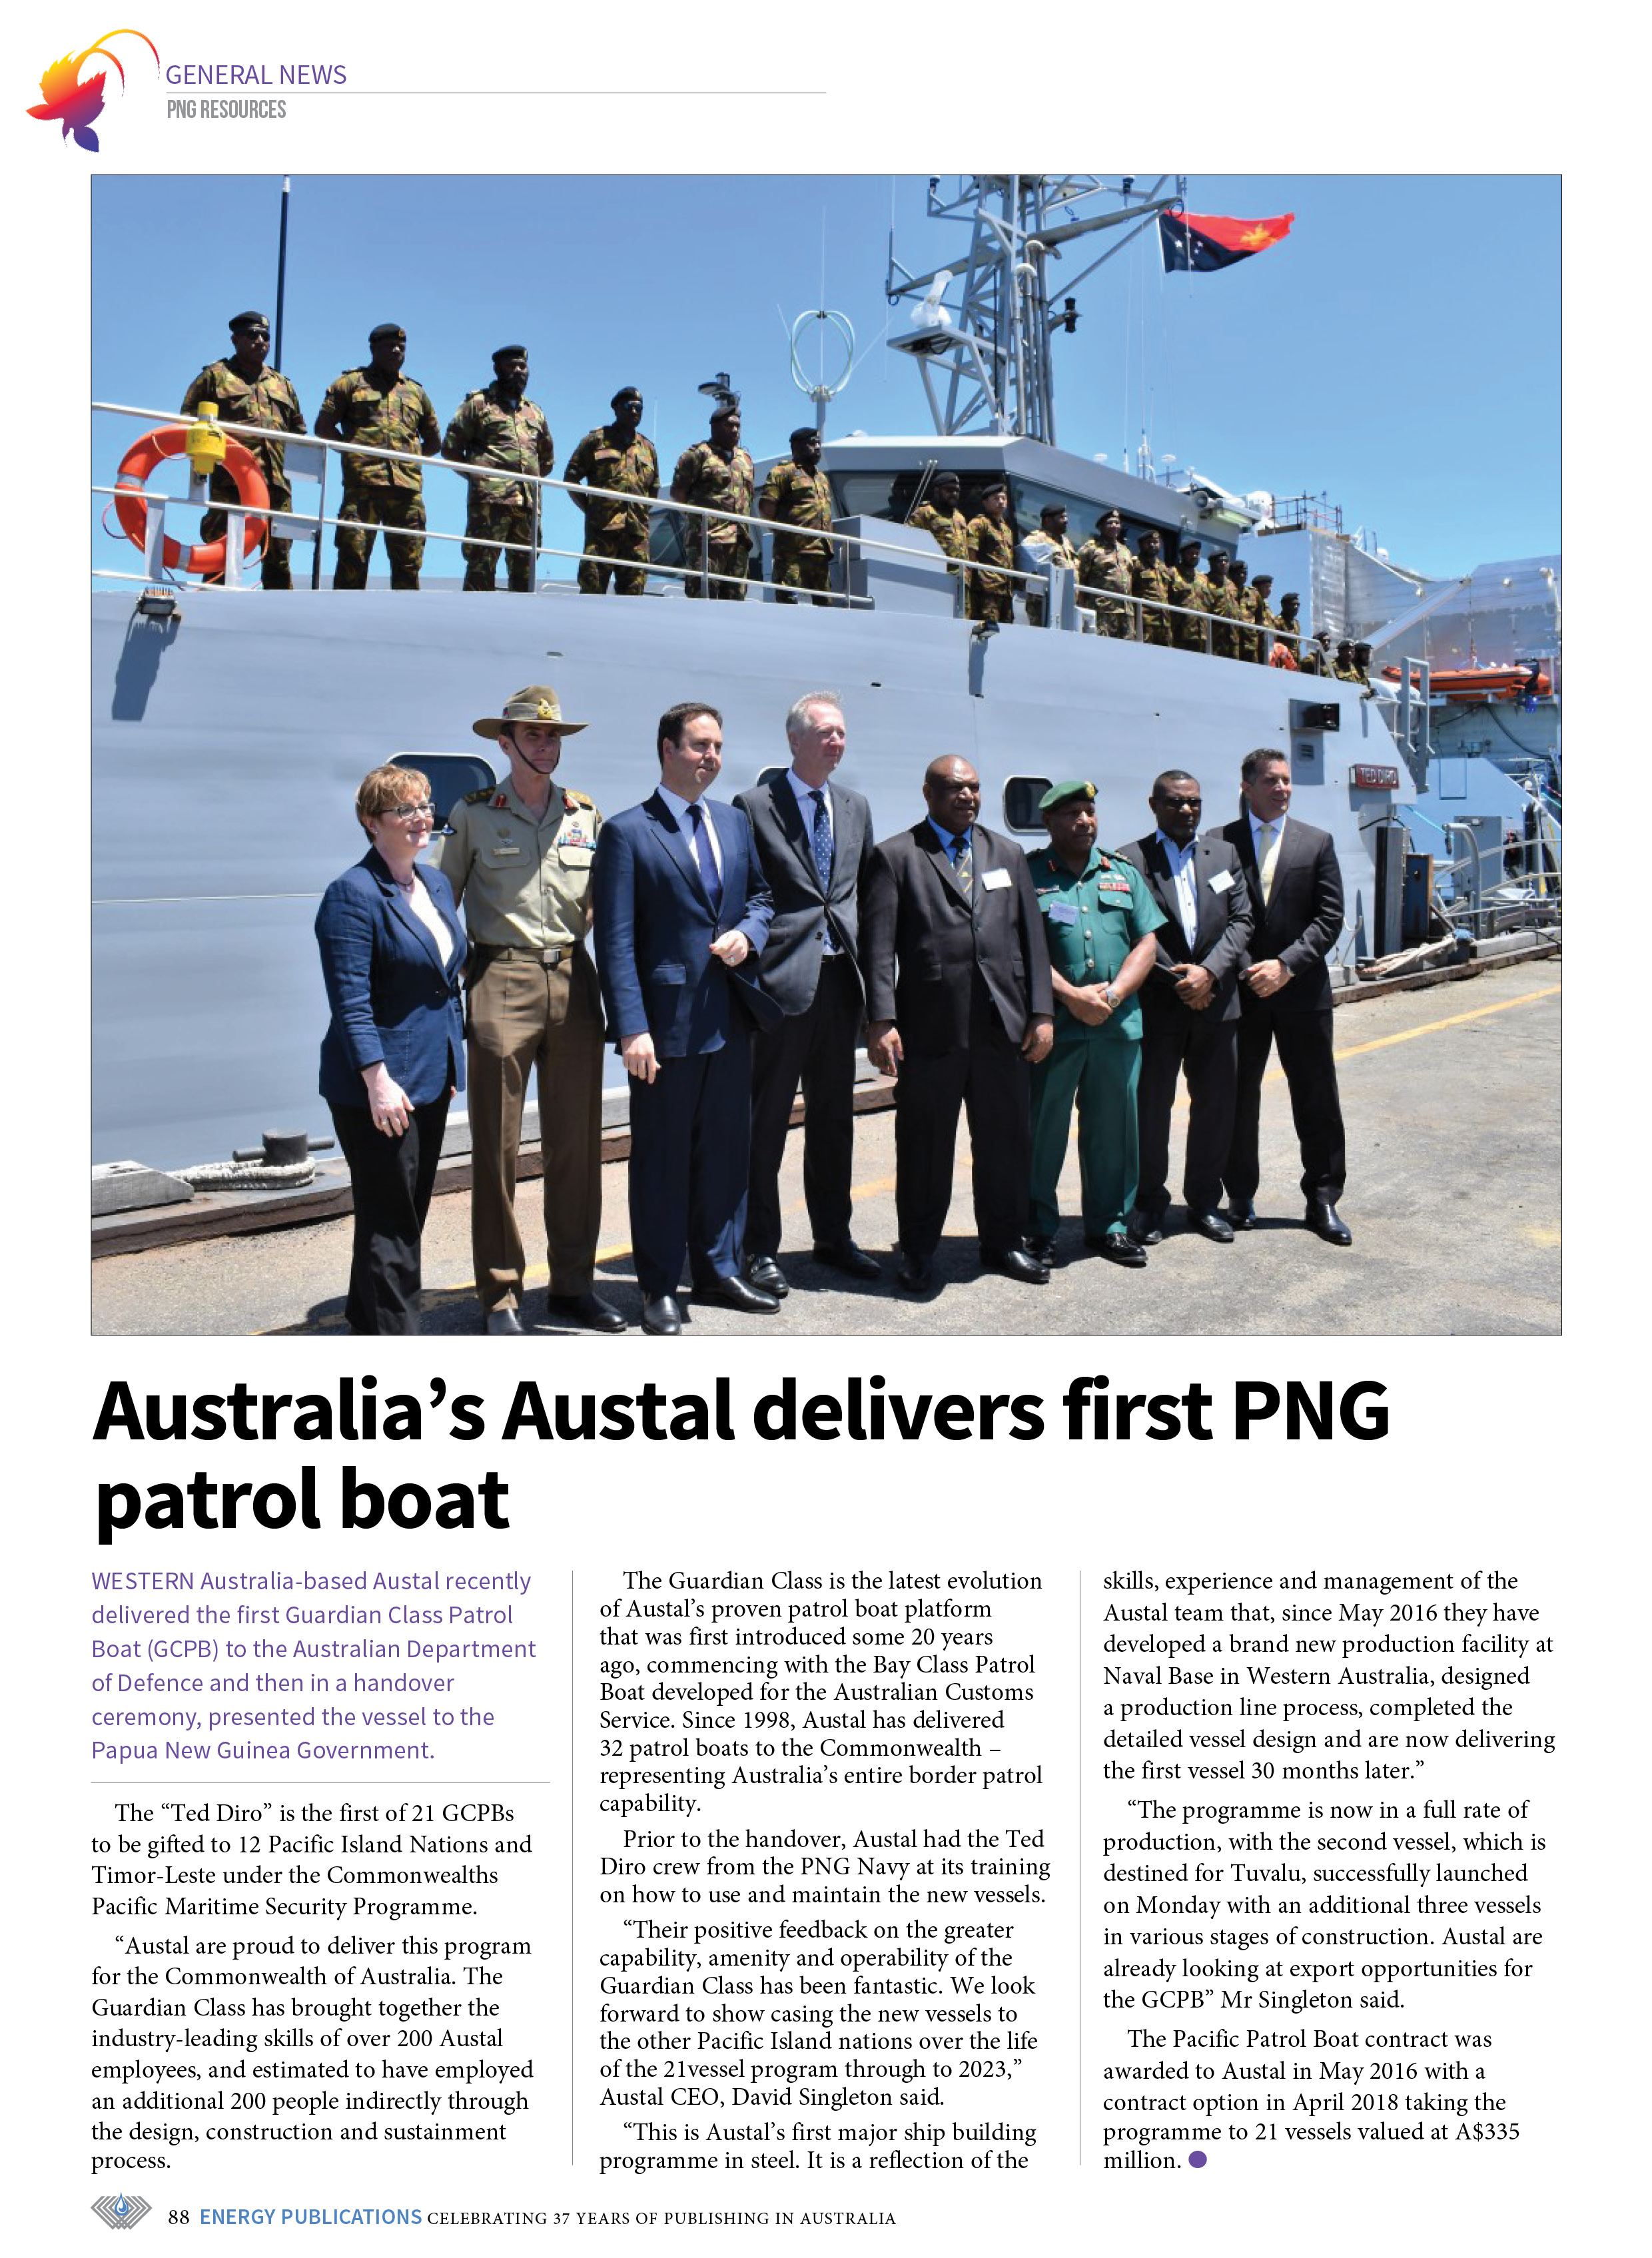 PNG Resources Q1 2019 – Page 90